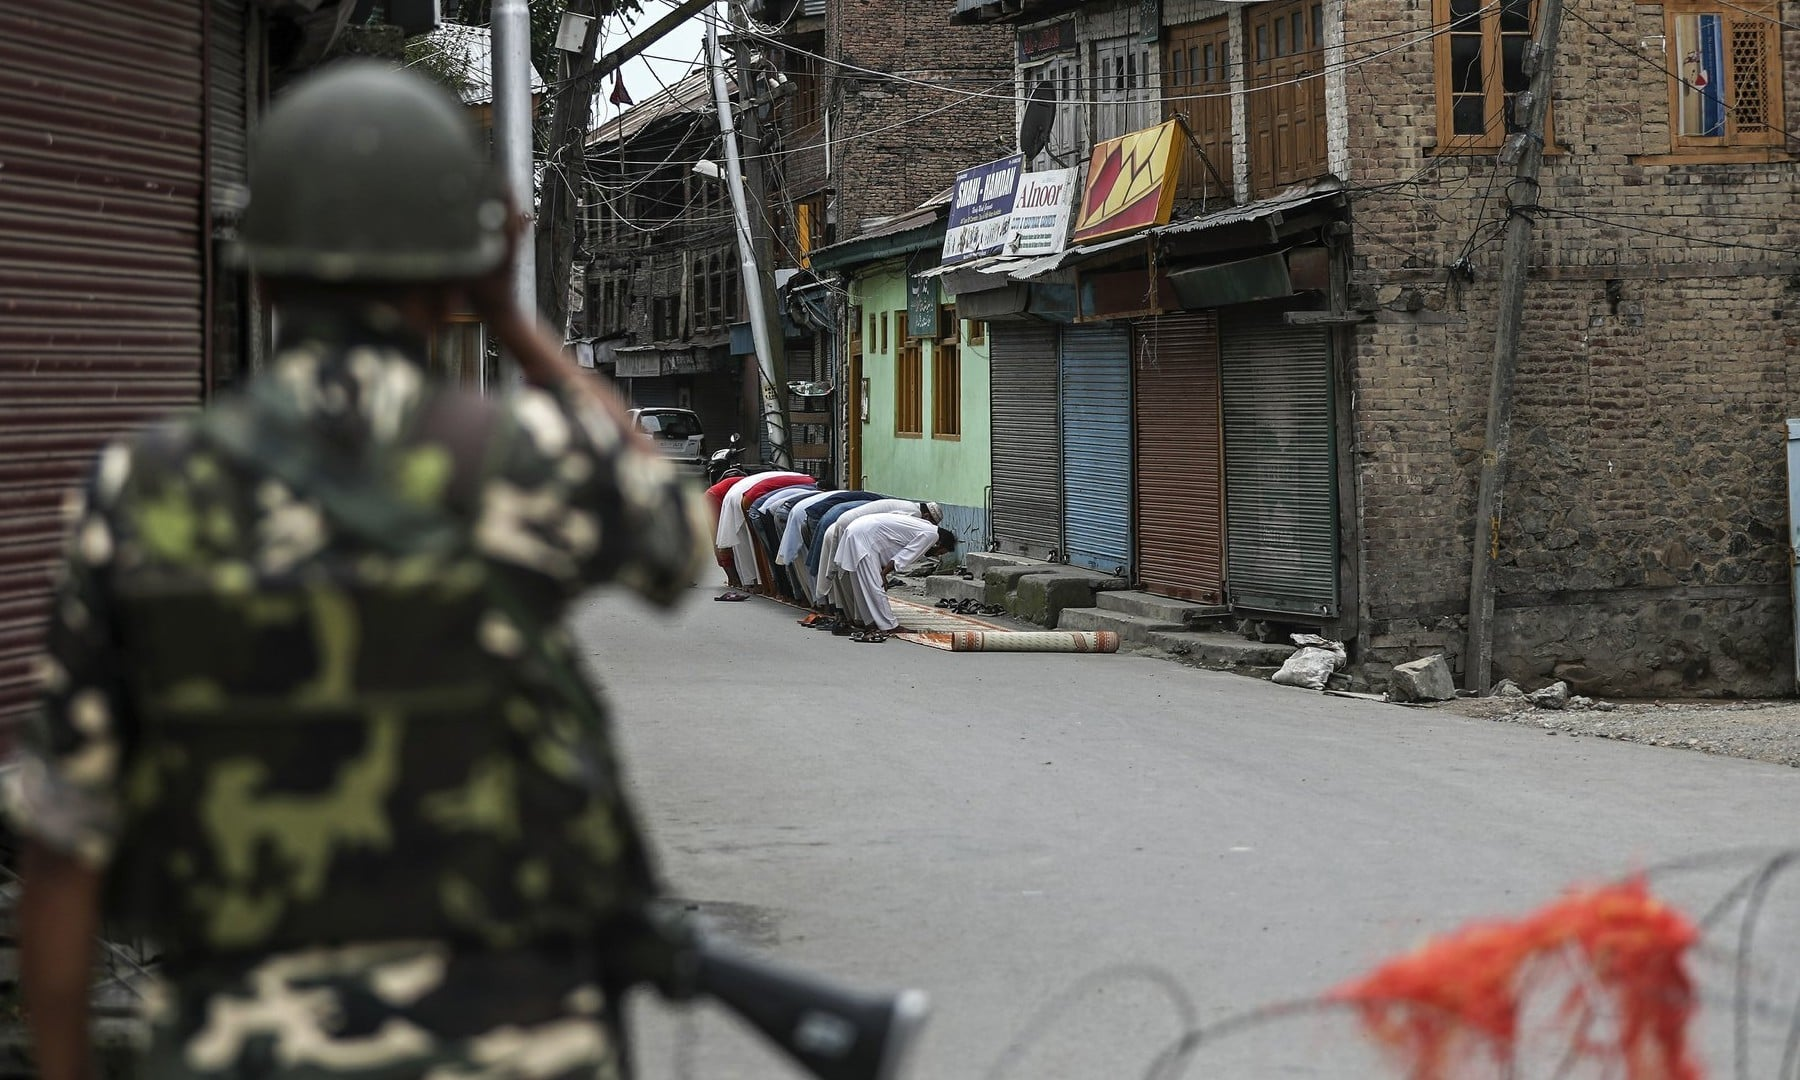 An Indian paramilitary soldier stands guard as Kashmiri Muslims offer Friday prayers on a street outside a local mosque in Srinagar on August 16, 2019. — AP/Mukhtar Khan